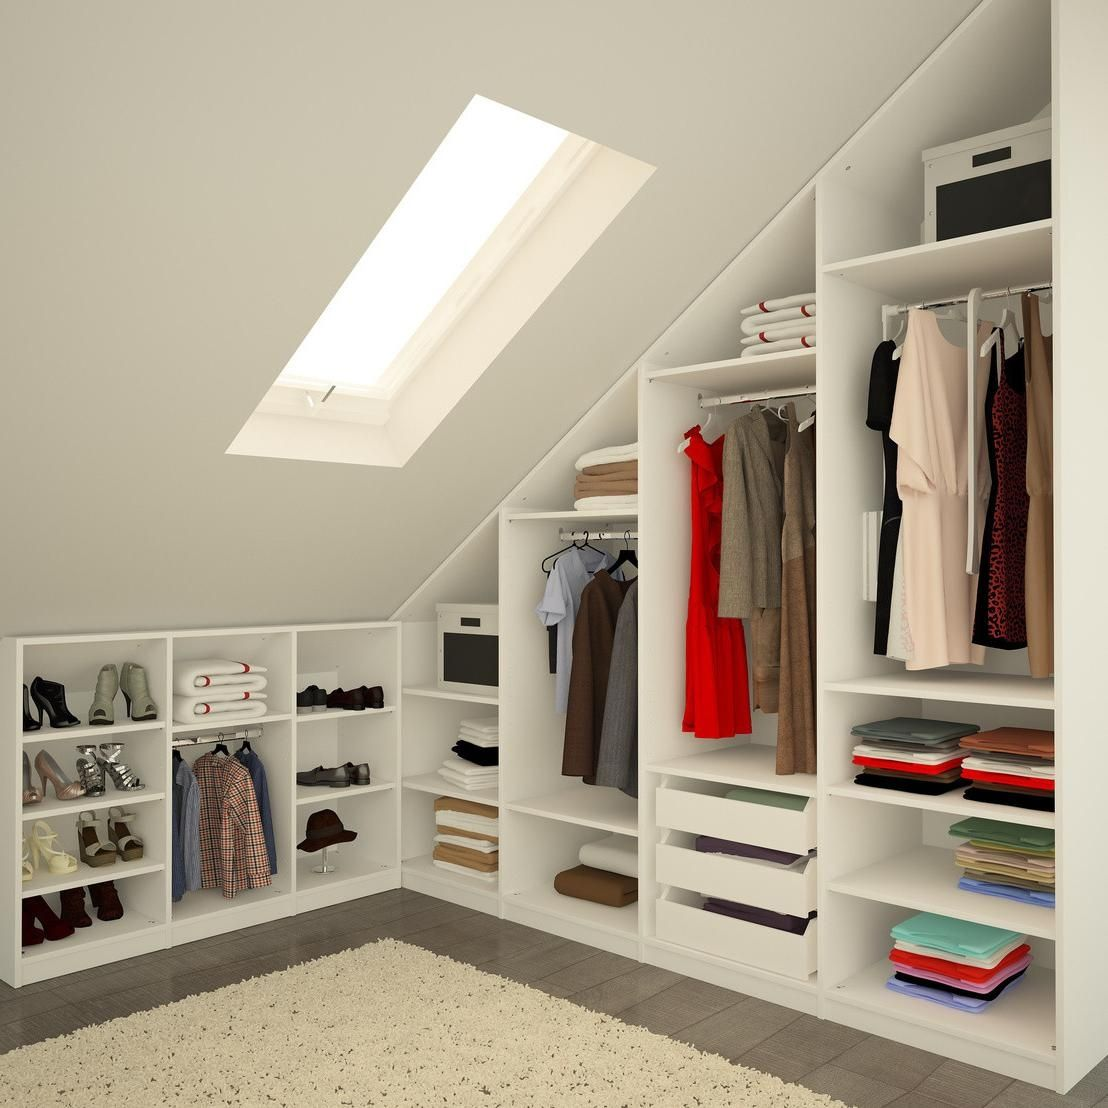 Small Attic Bedroom Closet  Dream House Plans  Pinterest  Attic